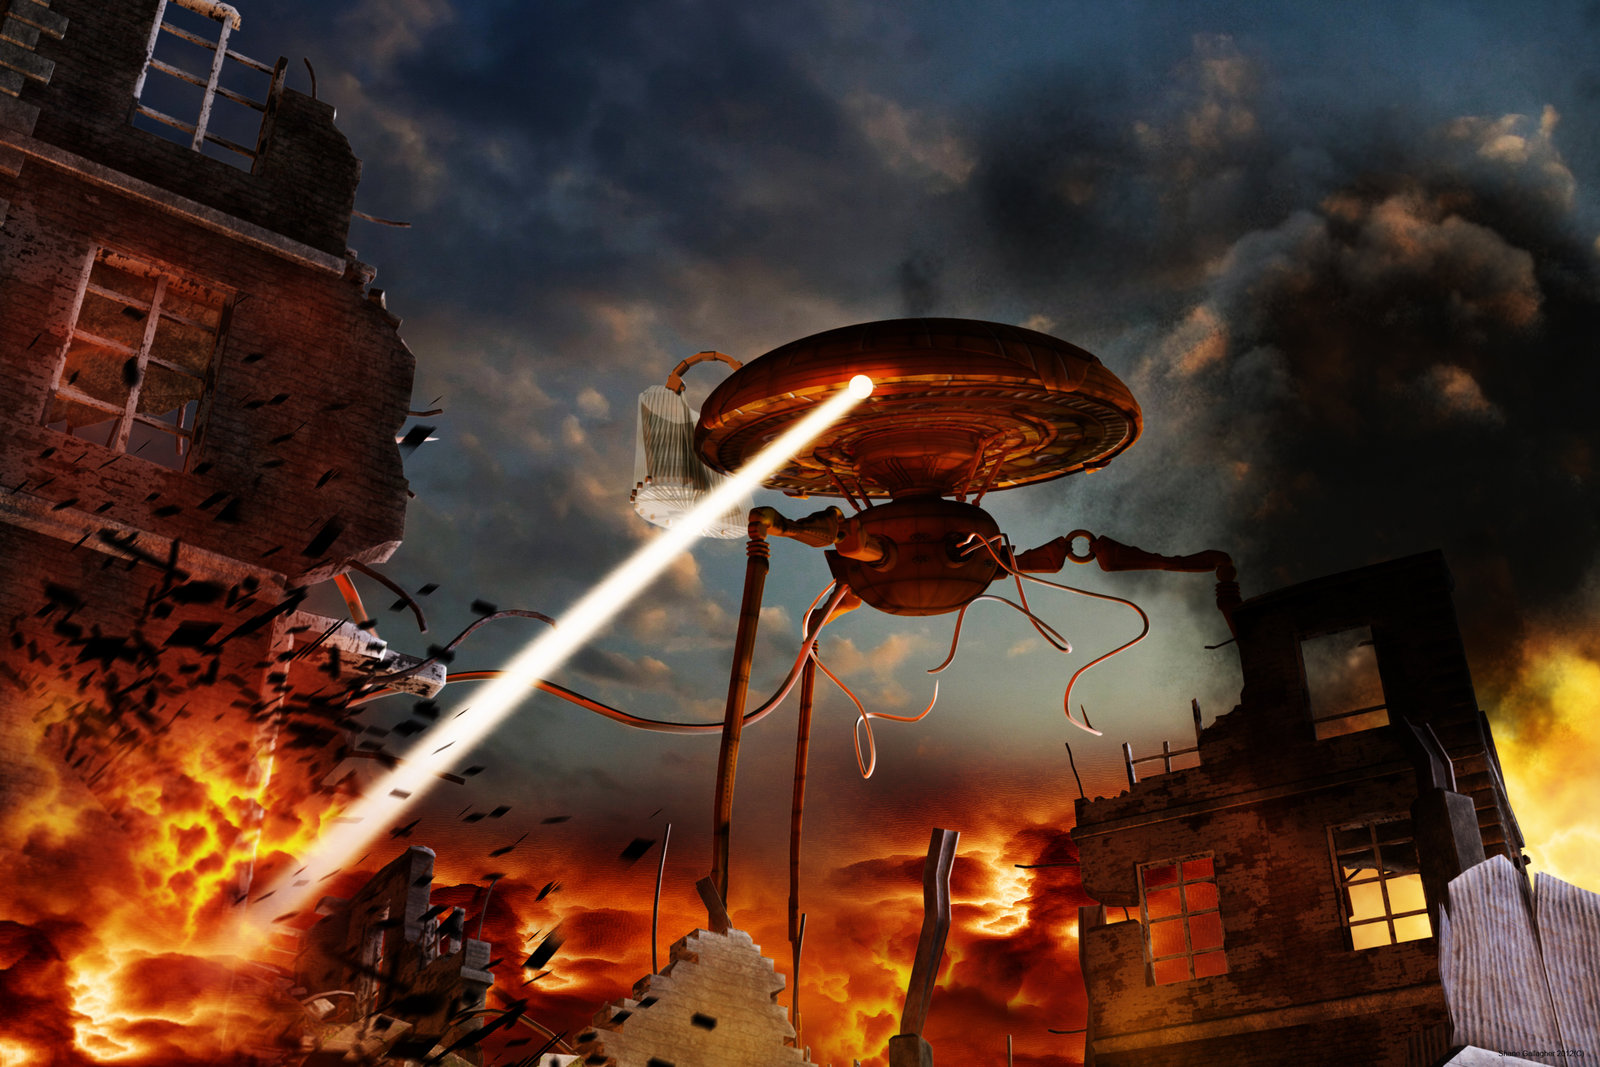 New War of the Worlds Series Coming to MTV